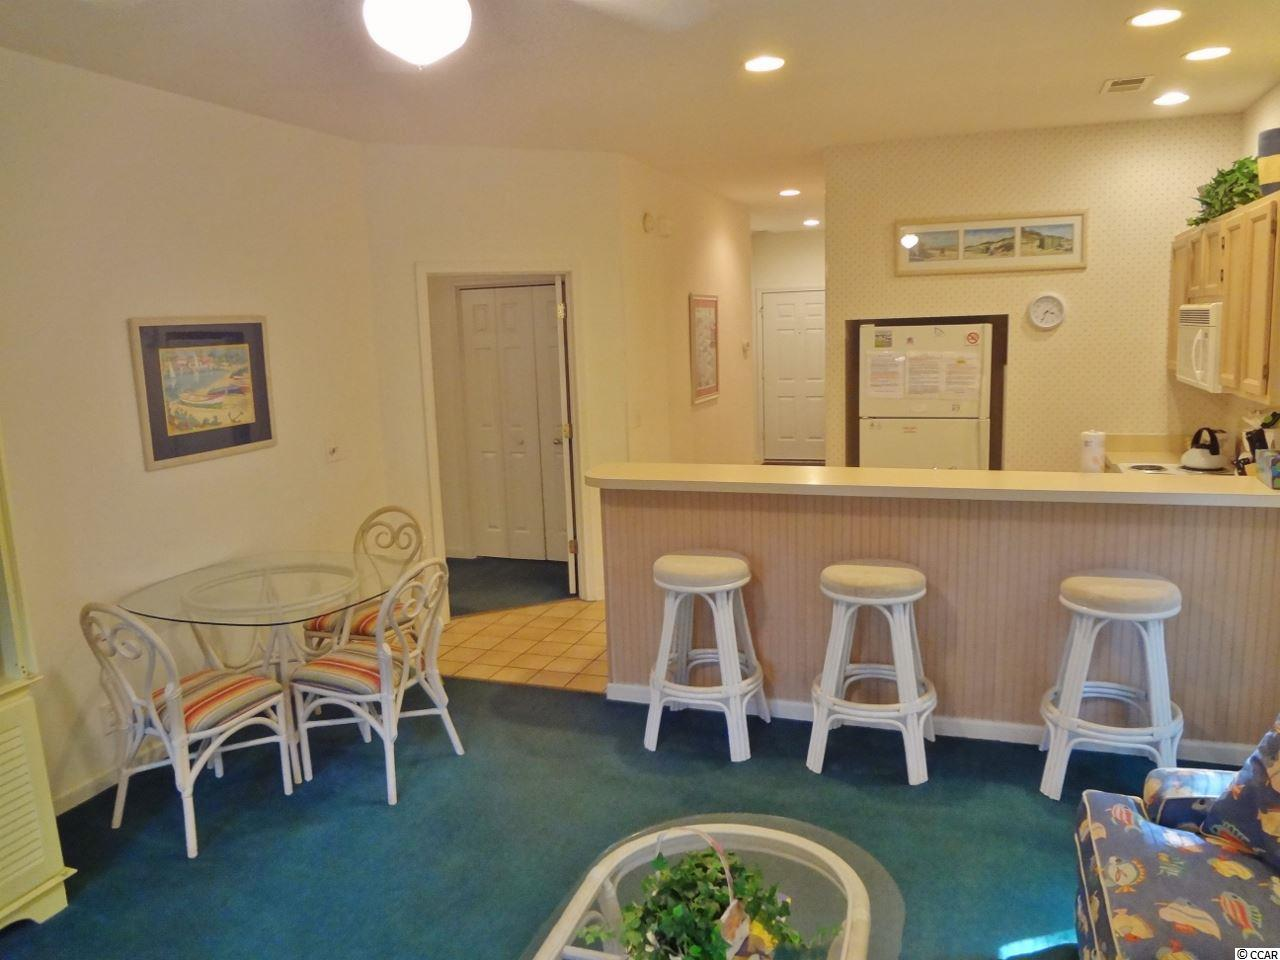 3 bedroom  Sea Trail - Sunset Beach, NC condo for sale